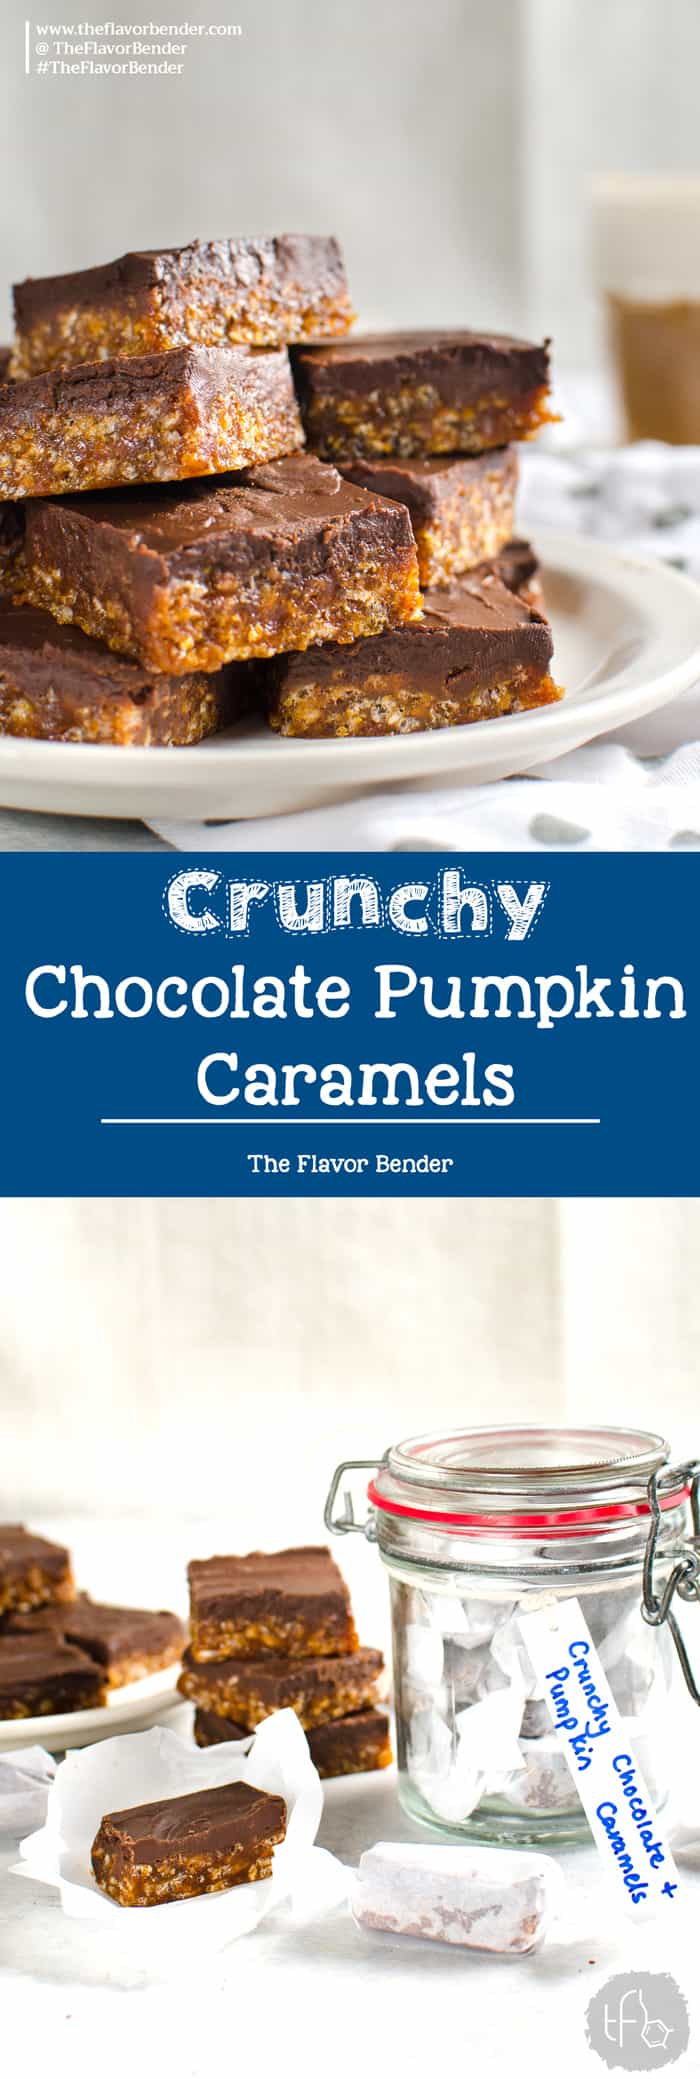 Crunchy Chocolate Pumpkin Caramels -Soft, chewy, crunchy and full of amazing pumpkin and bittersweet chocolate flavor and cruchy rice krispies. Perfect for gift-giving, especially for the holidays